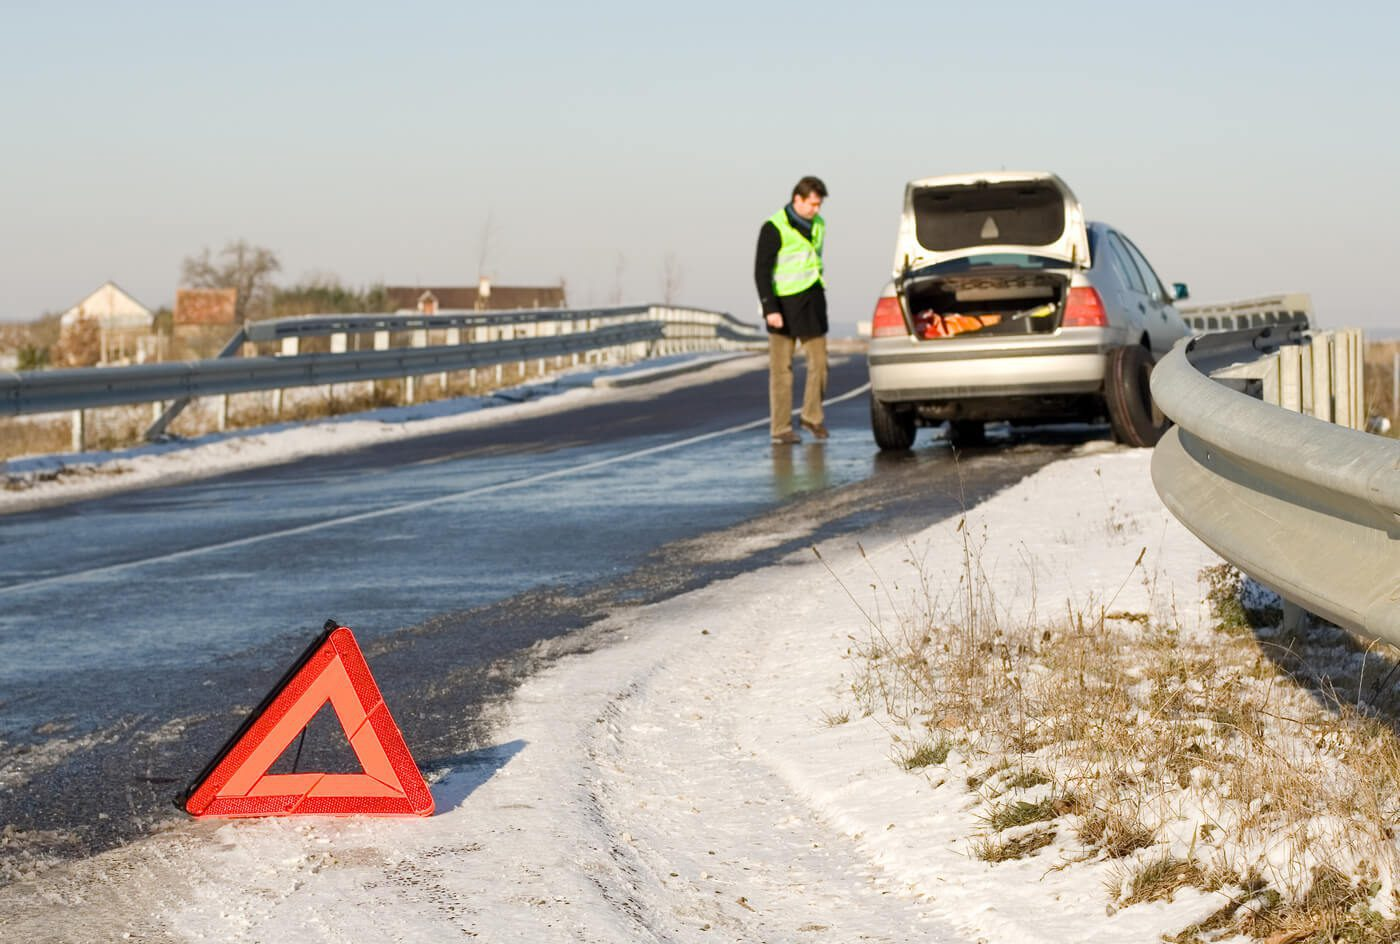 Warning triangle on winter road